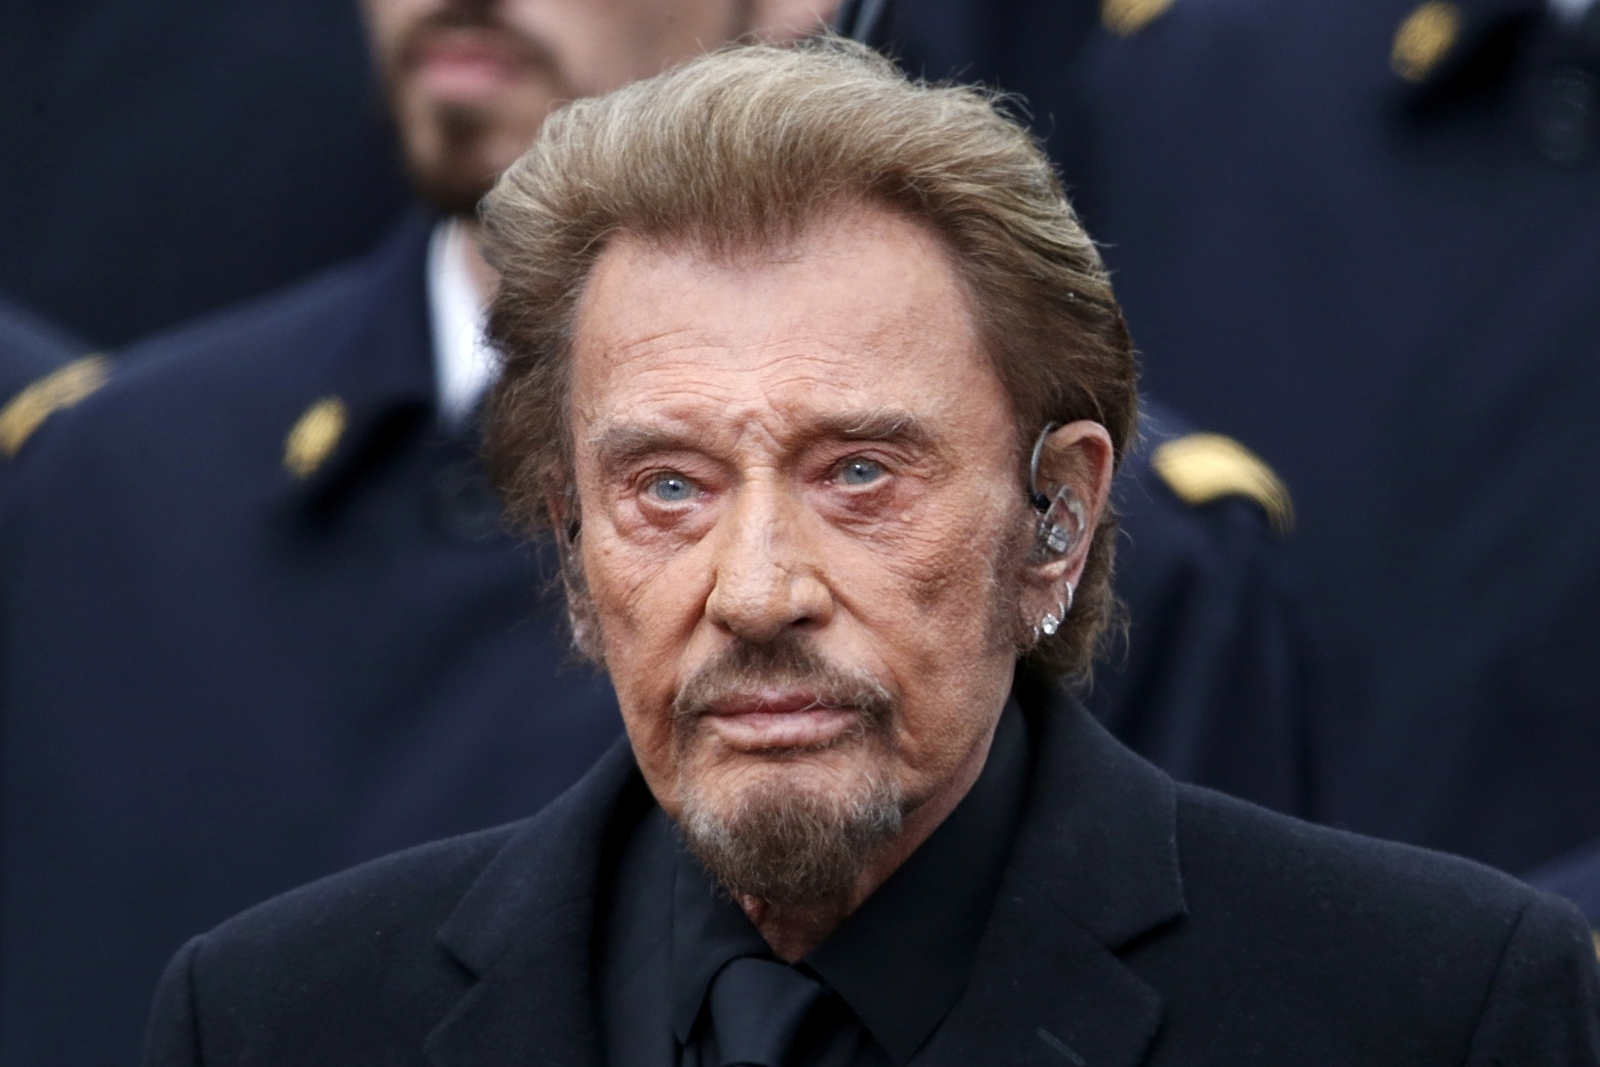 Veteran French crooner Johnny Hallyday dies aged 74 after cancer battle